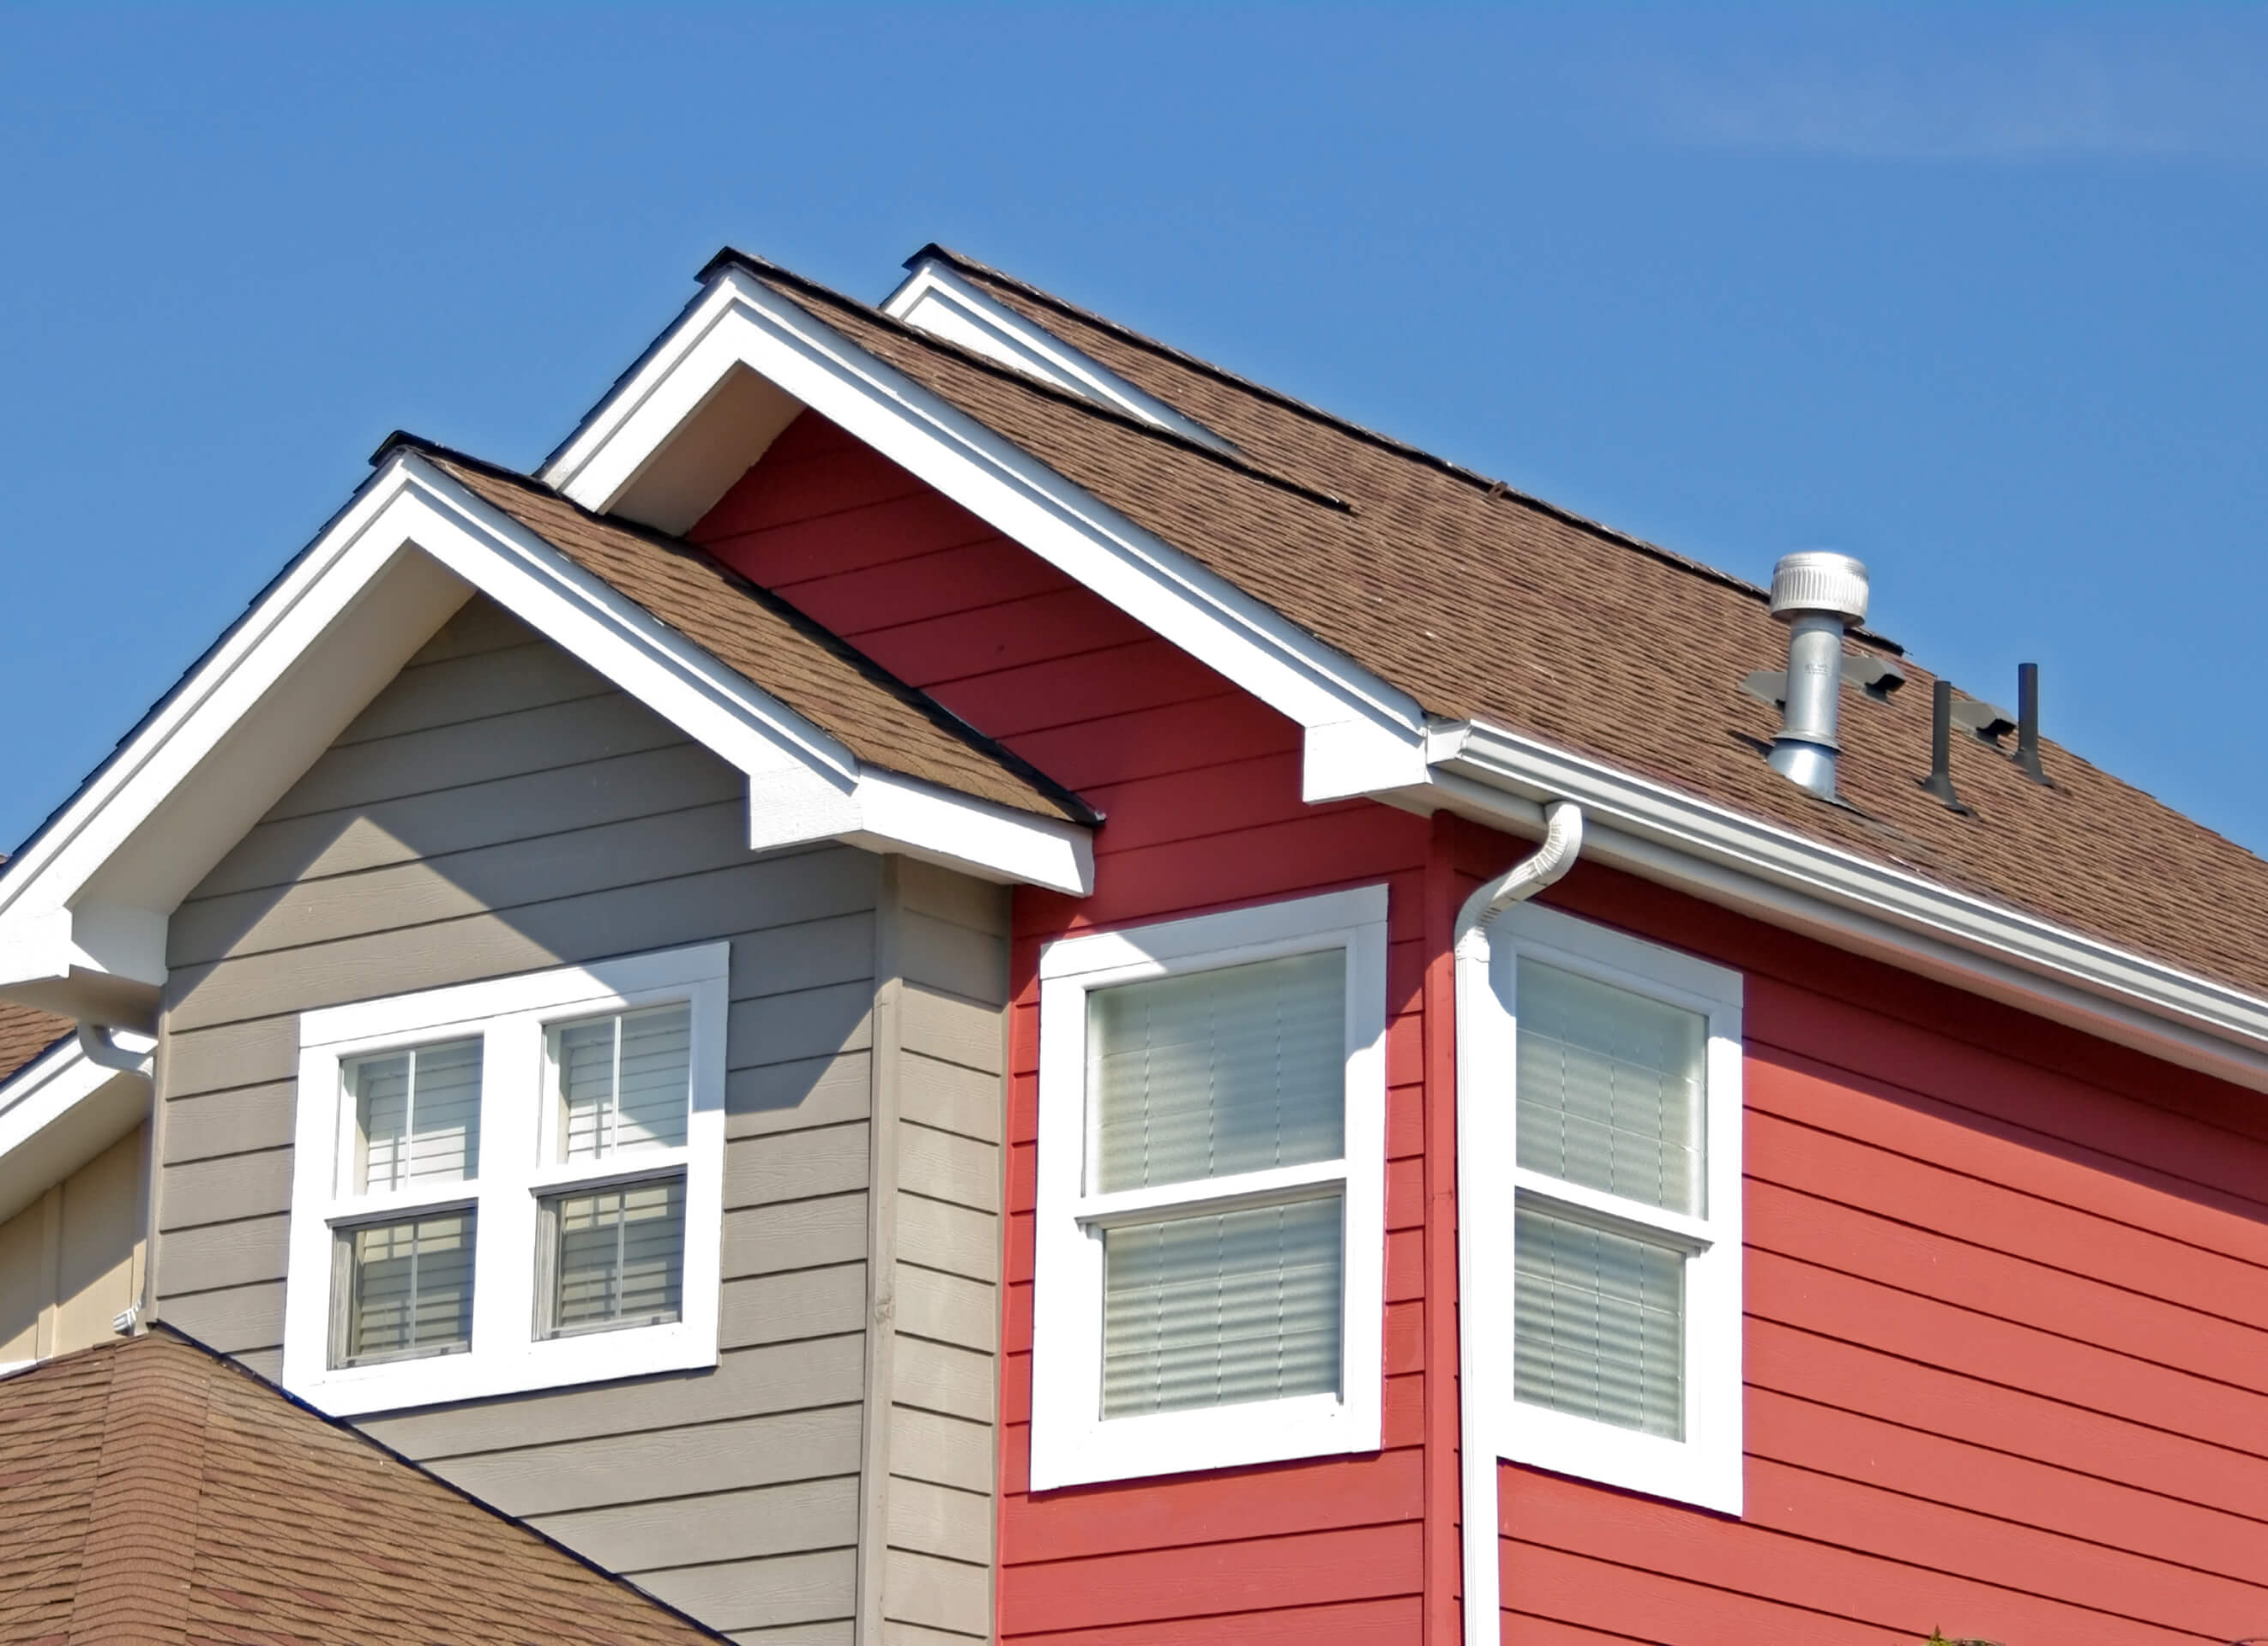 Eaves of red and beige house